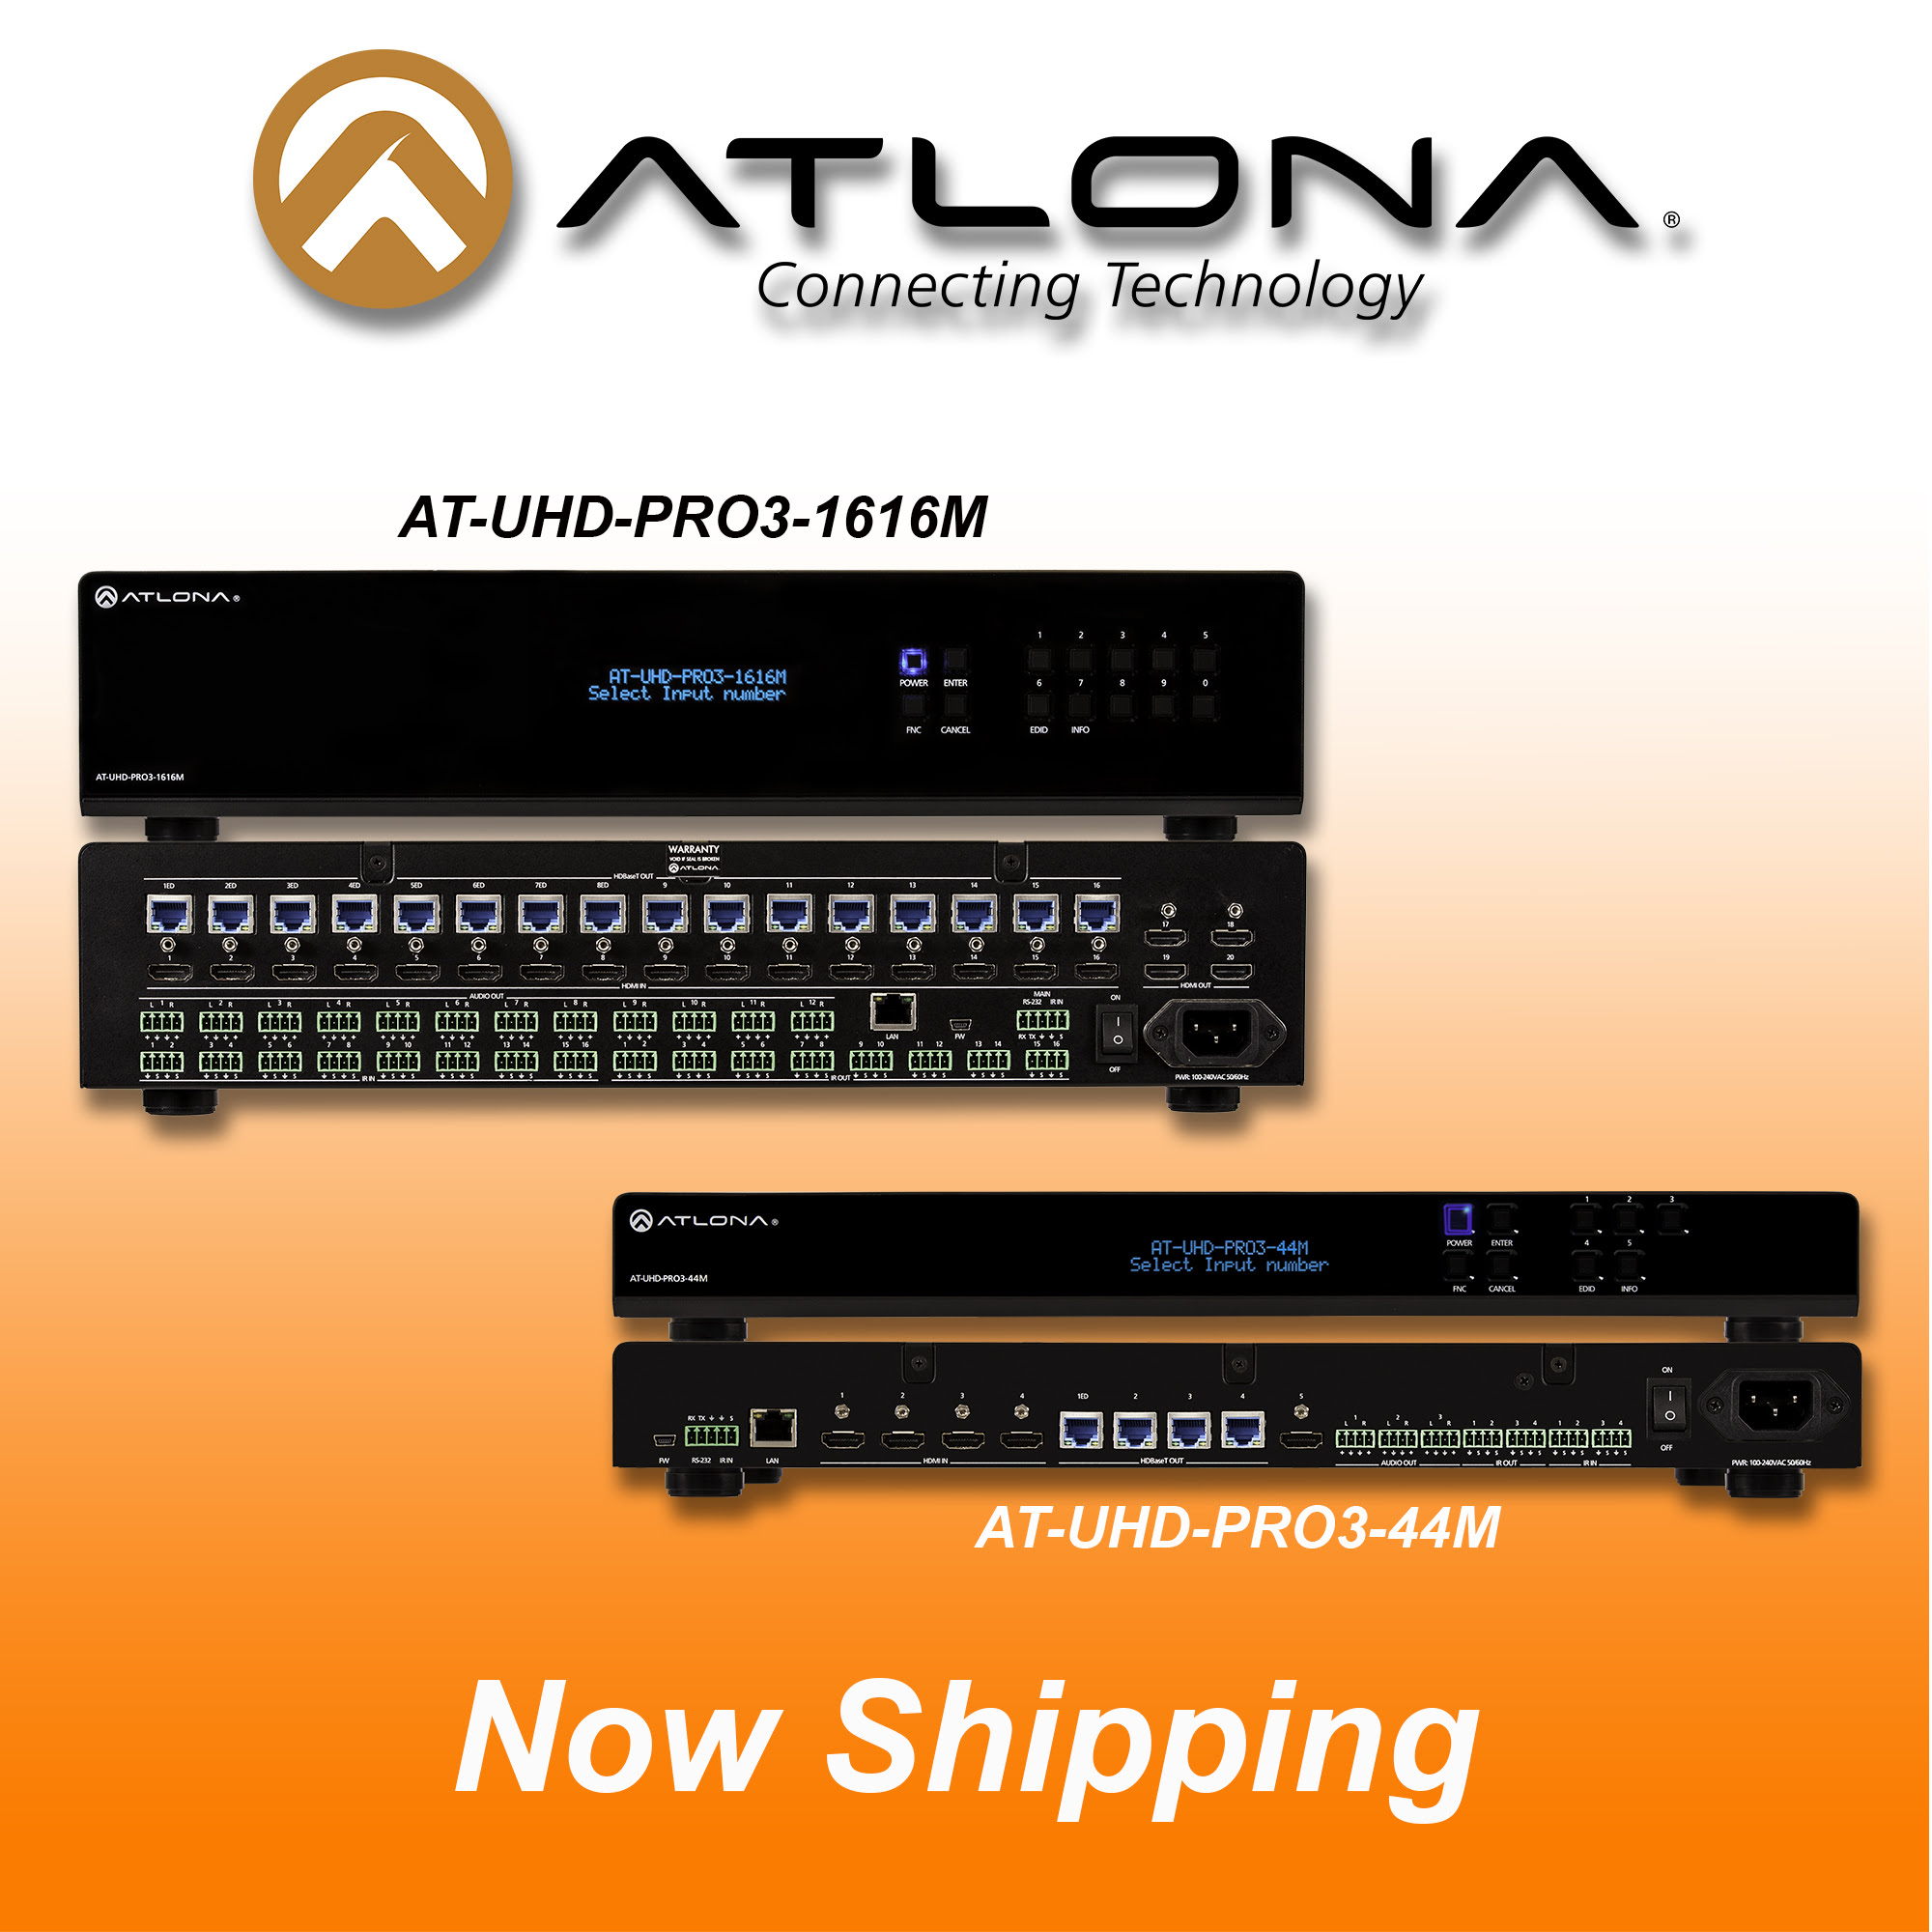 Atlona announced 4K/UHD Series of Matrix Switchers